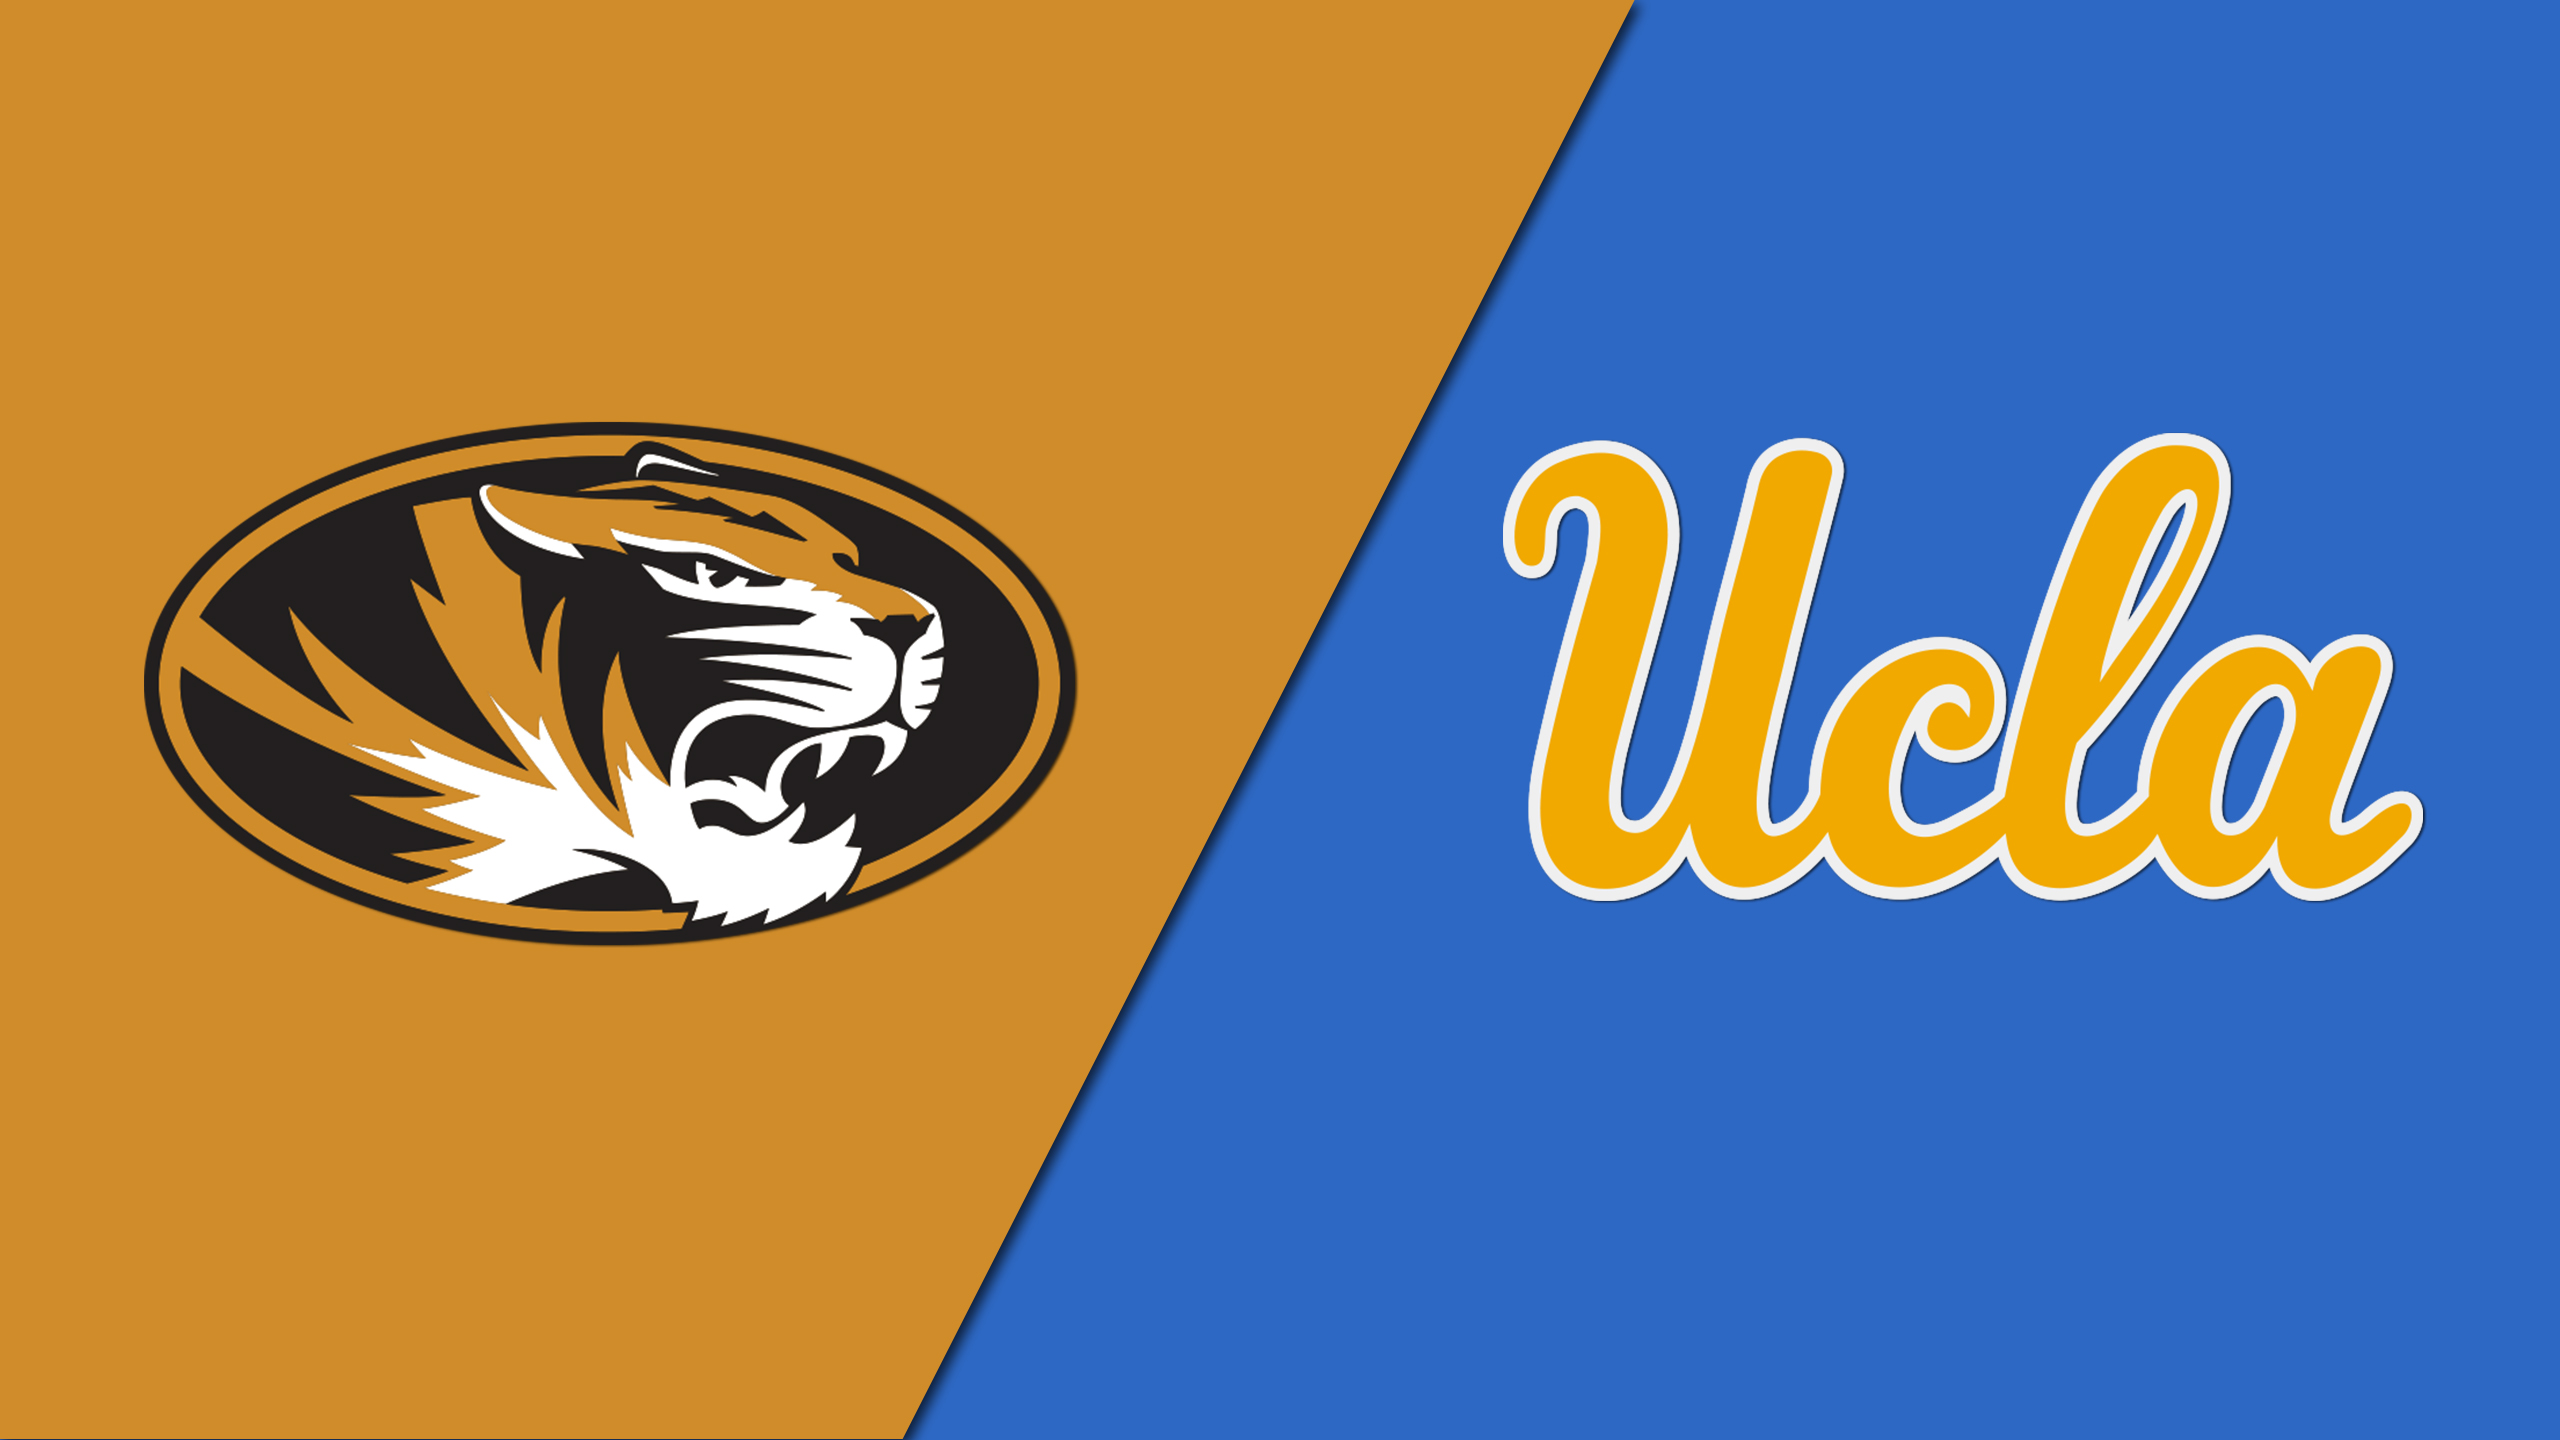 Missouri vs. UCLA (Site 8 / Game 7) (re-air)